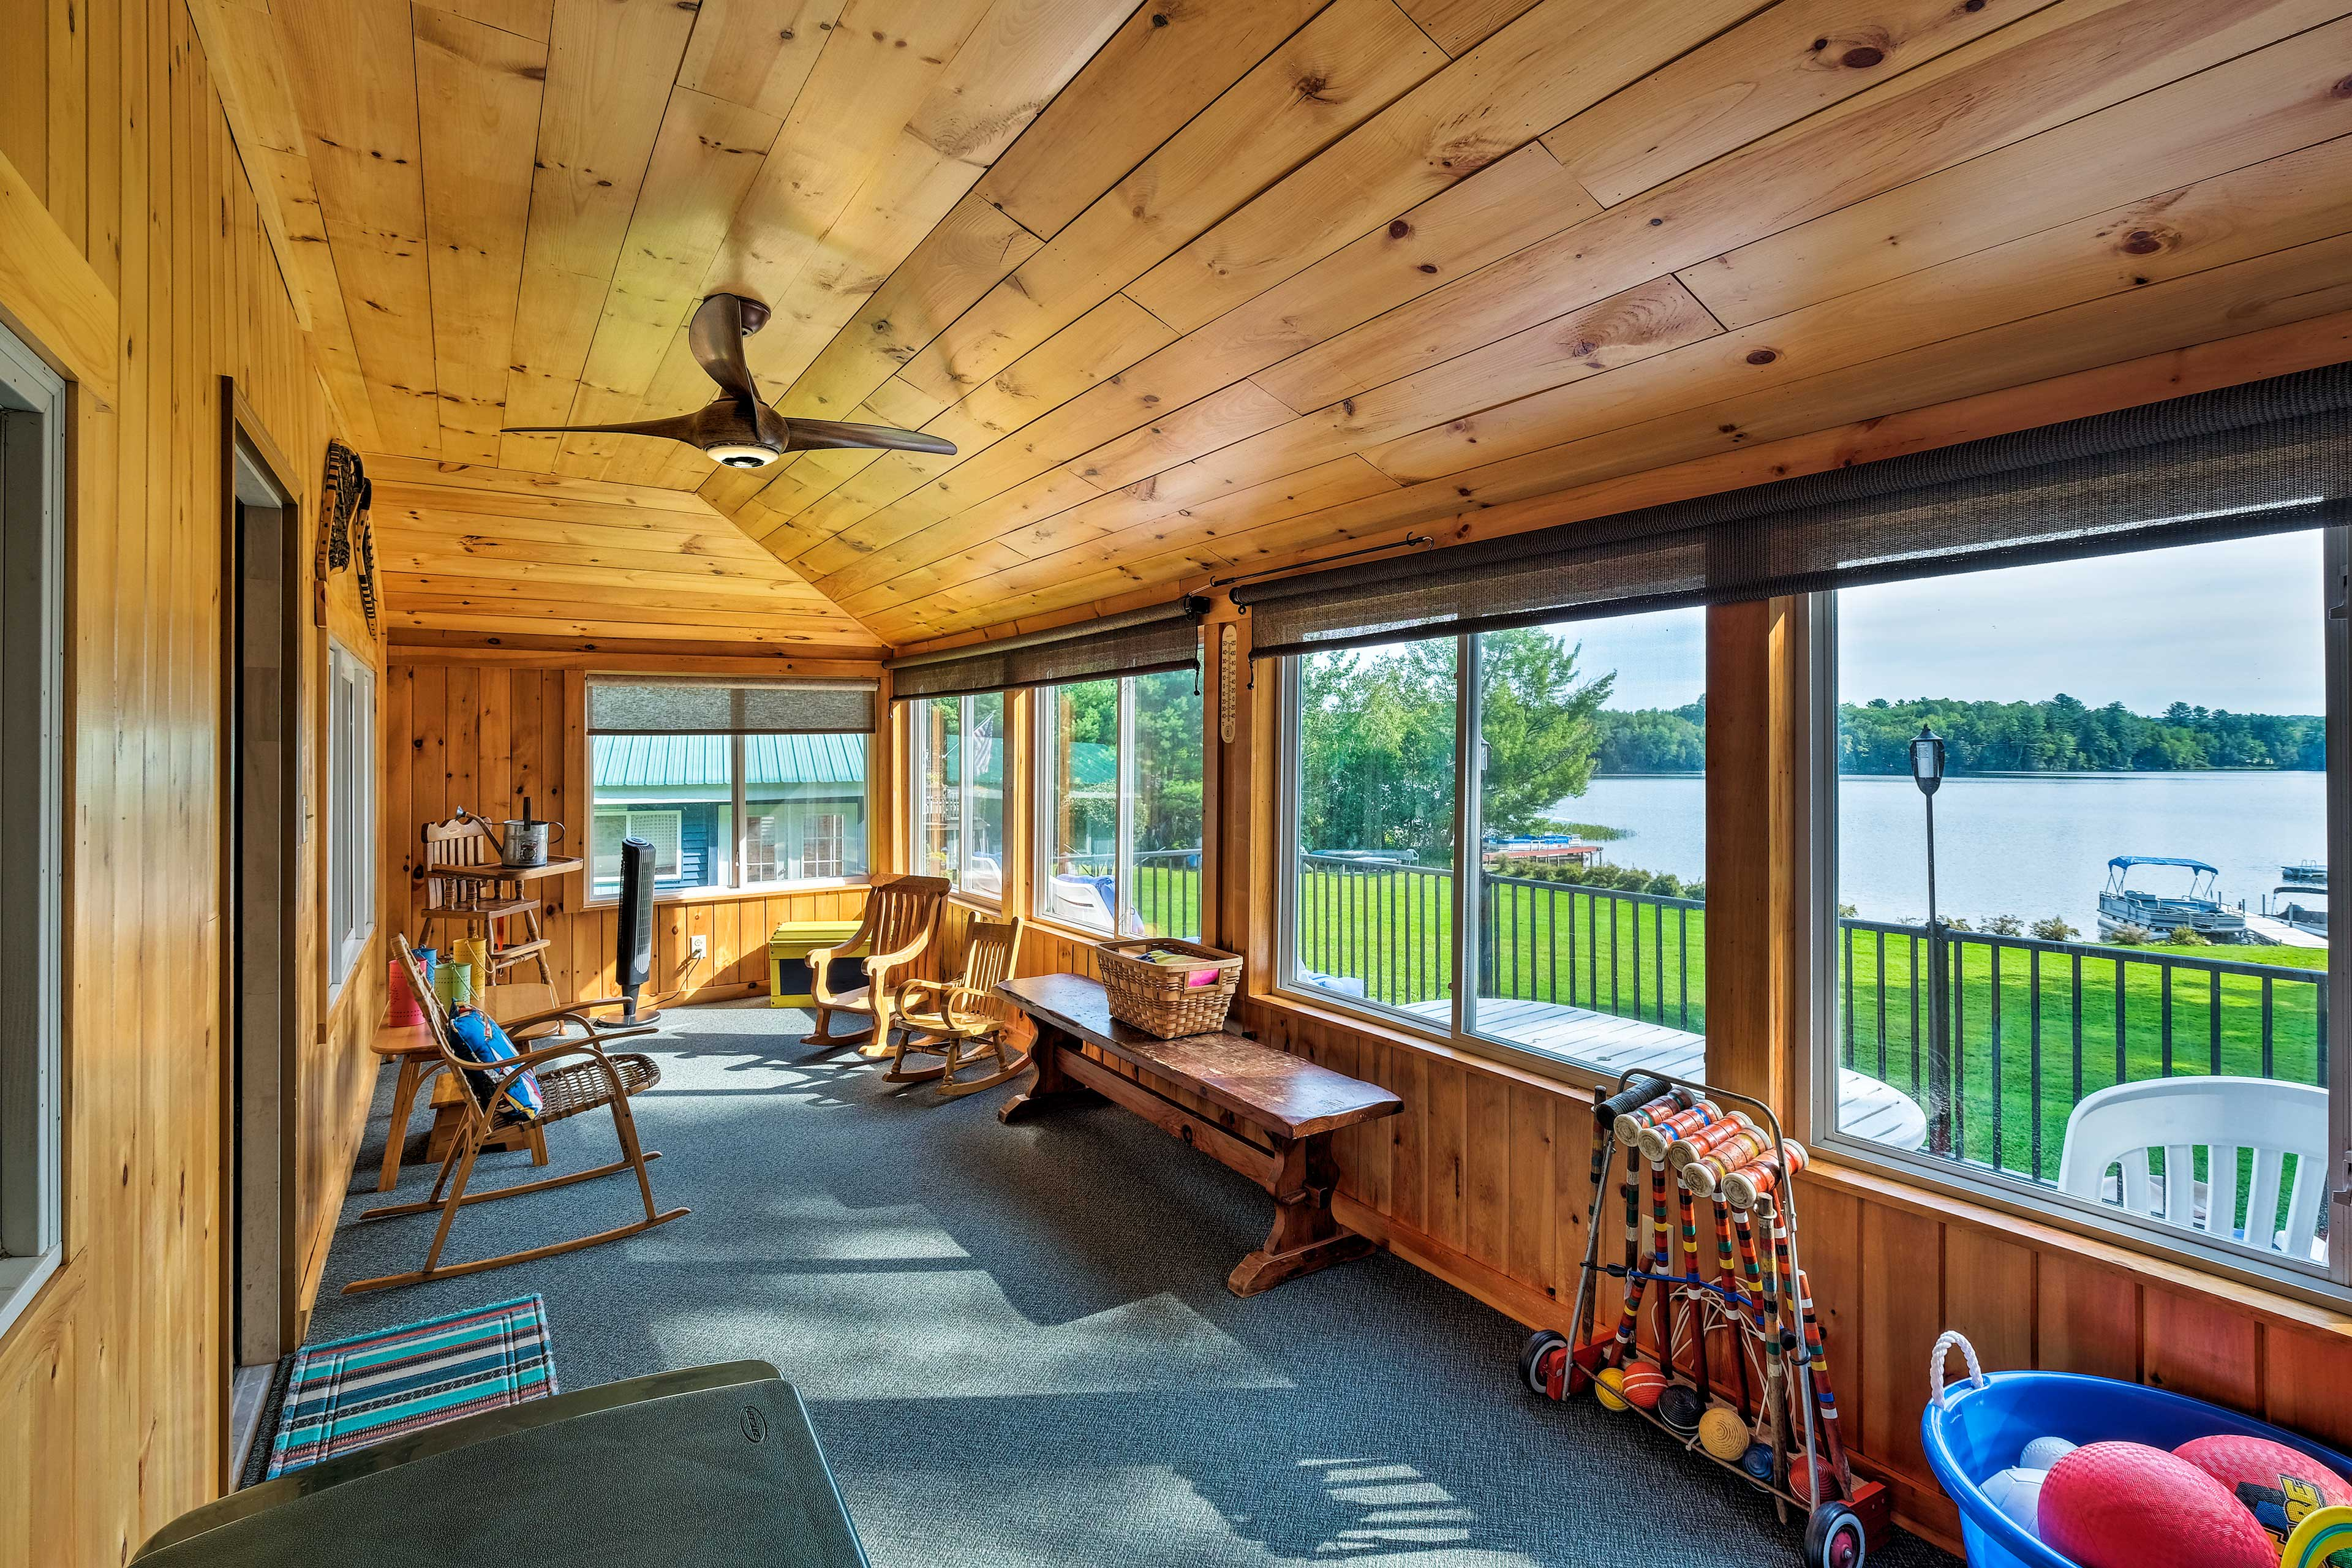 Sit out on the covered porch and enjoy views of the water.